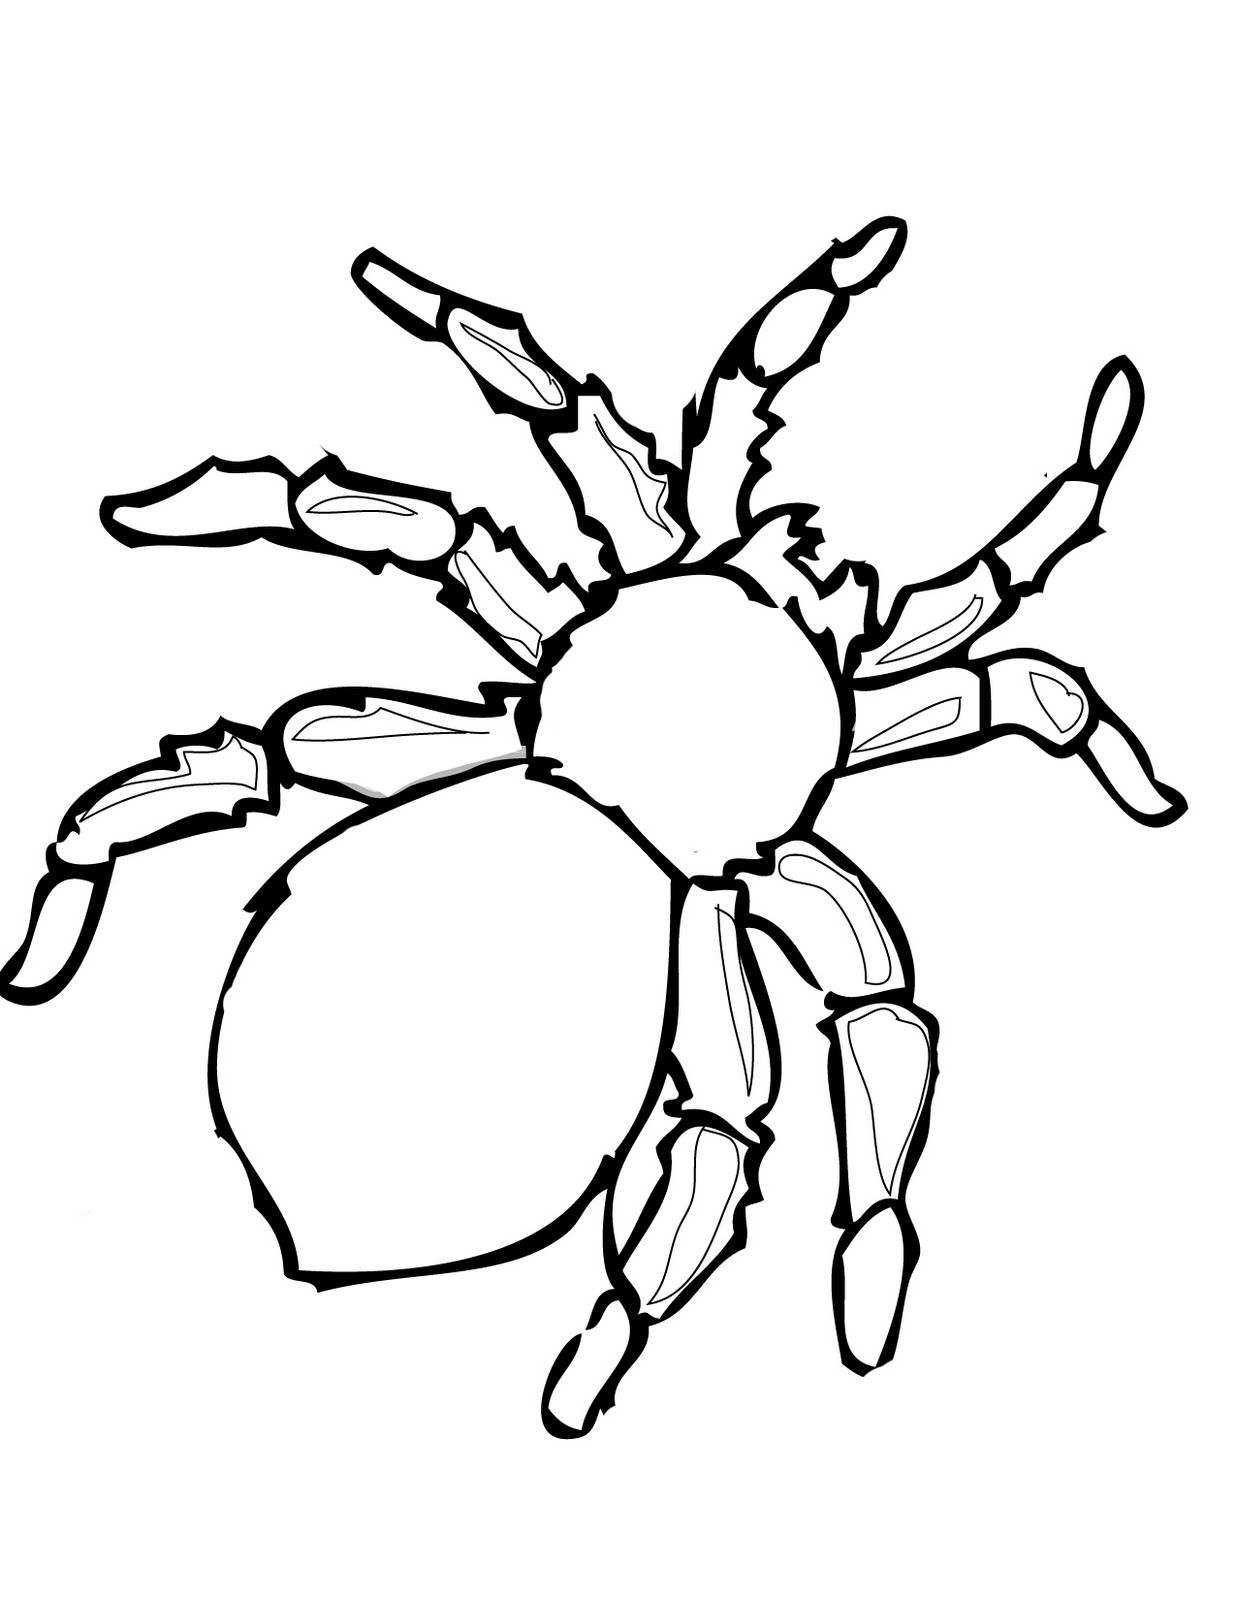 Printable Halloween Decoration Cutouts Spider Coloring Page